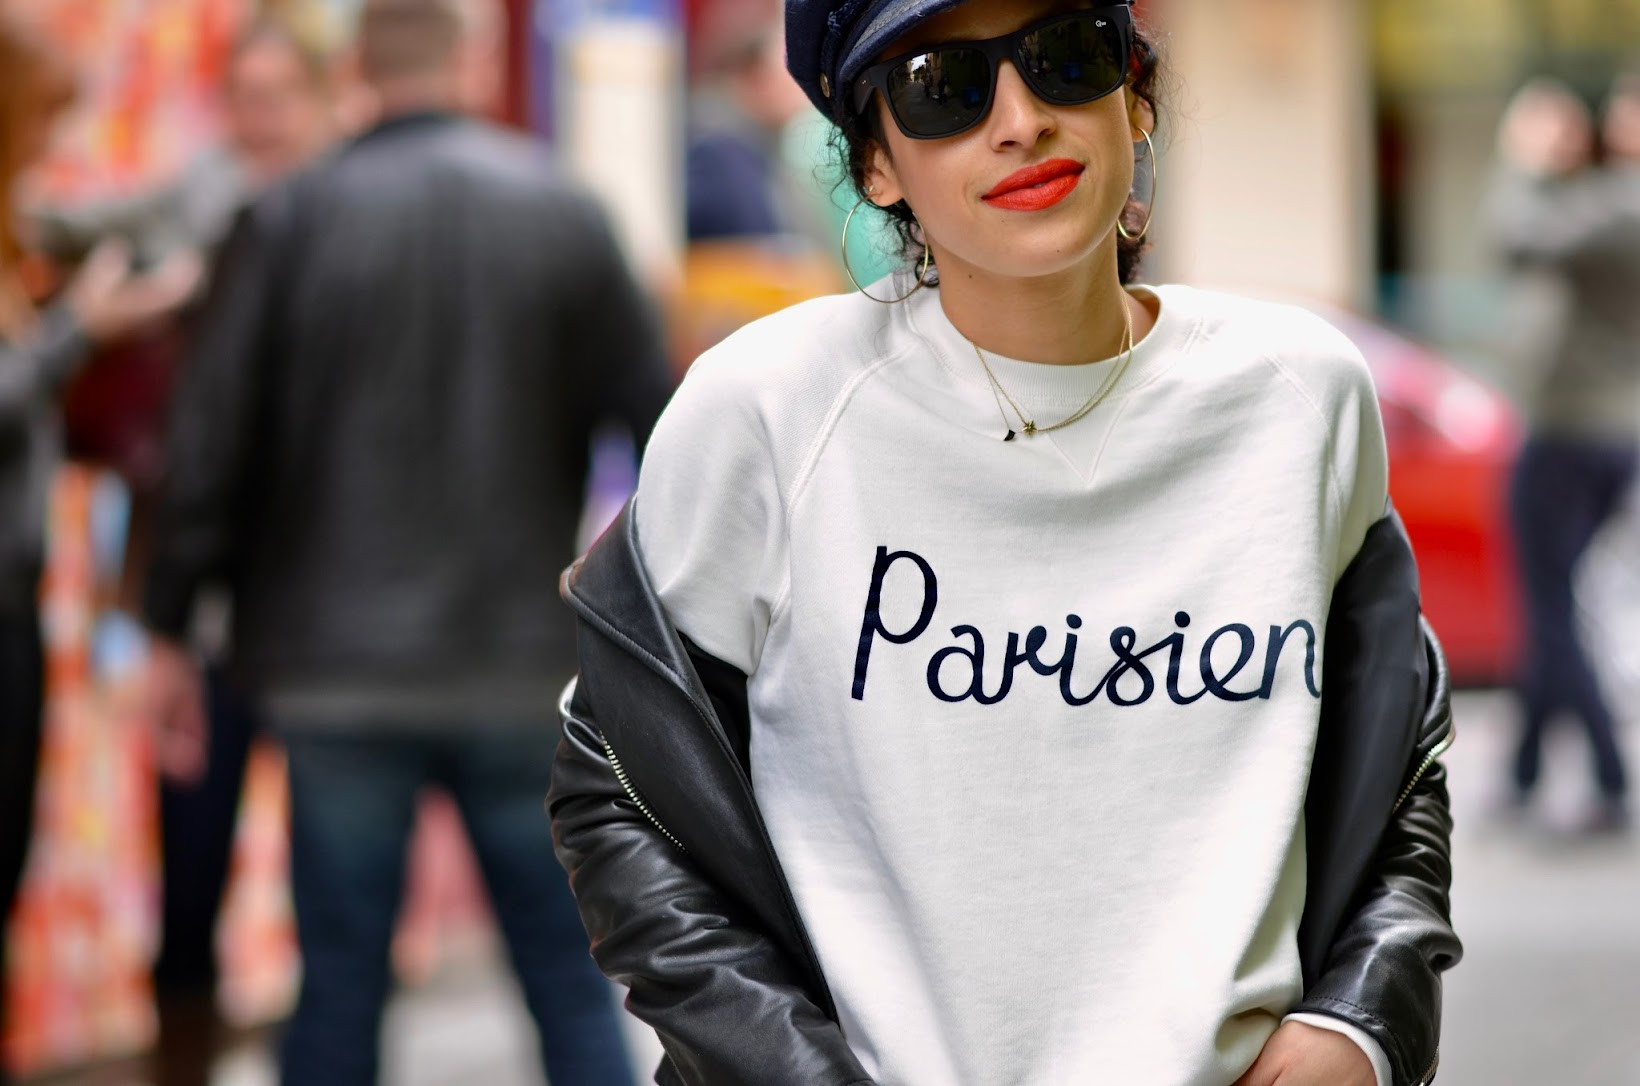 le parisien sweatshirt, maison kitsuné, farfetch, european brand, cool chick style, cool girl style, baker boy hat, orange lipstick, san francisco street style